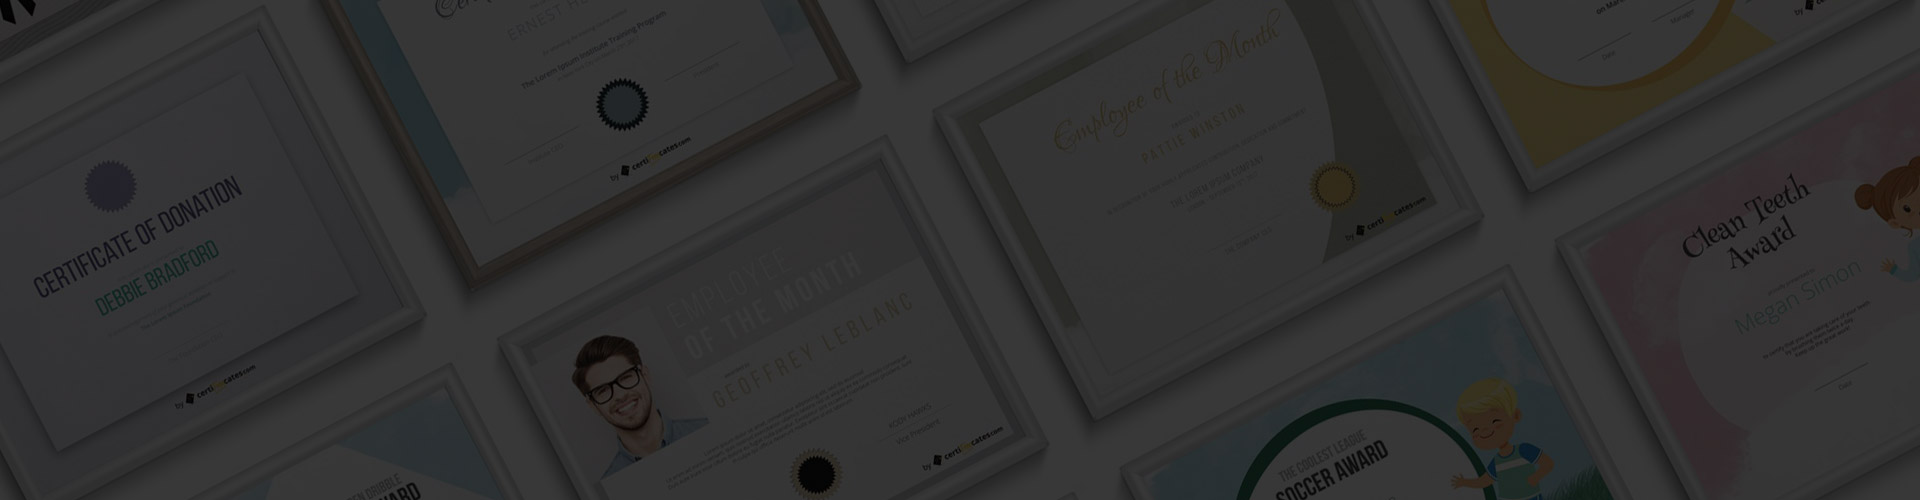 20 free certificate templates for word certifreecates 20 free certificate templates for word alramifo Gallery